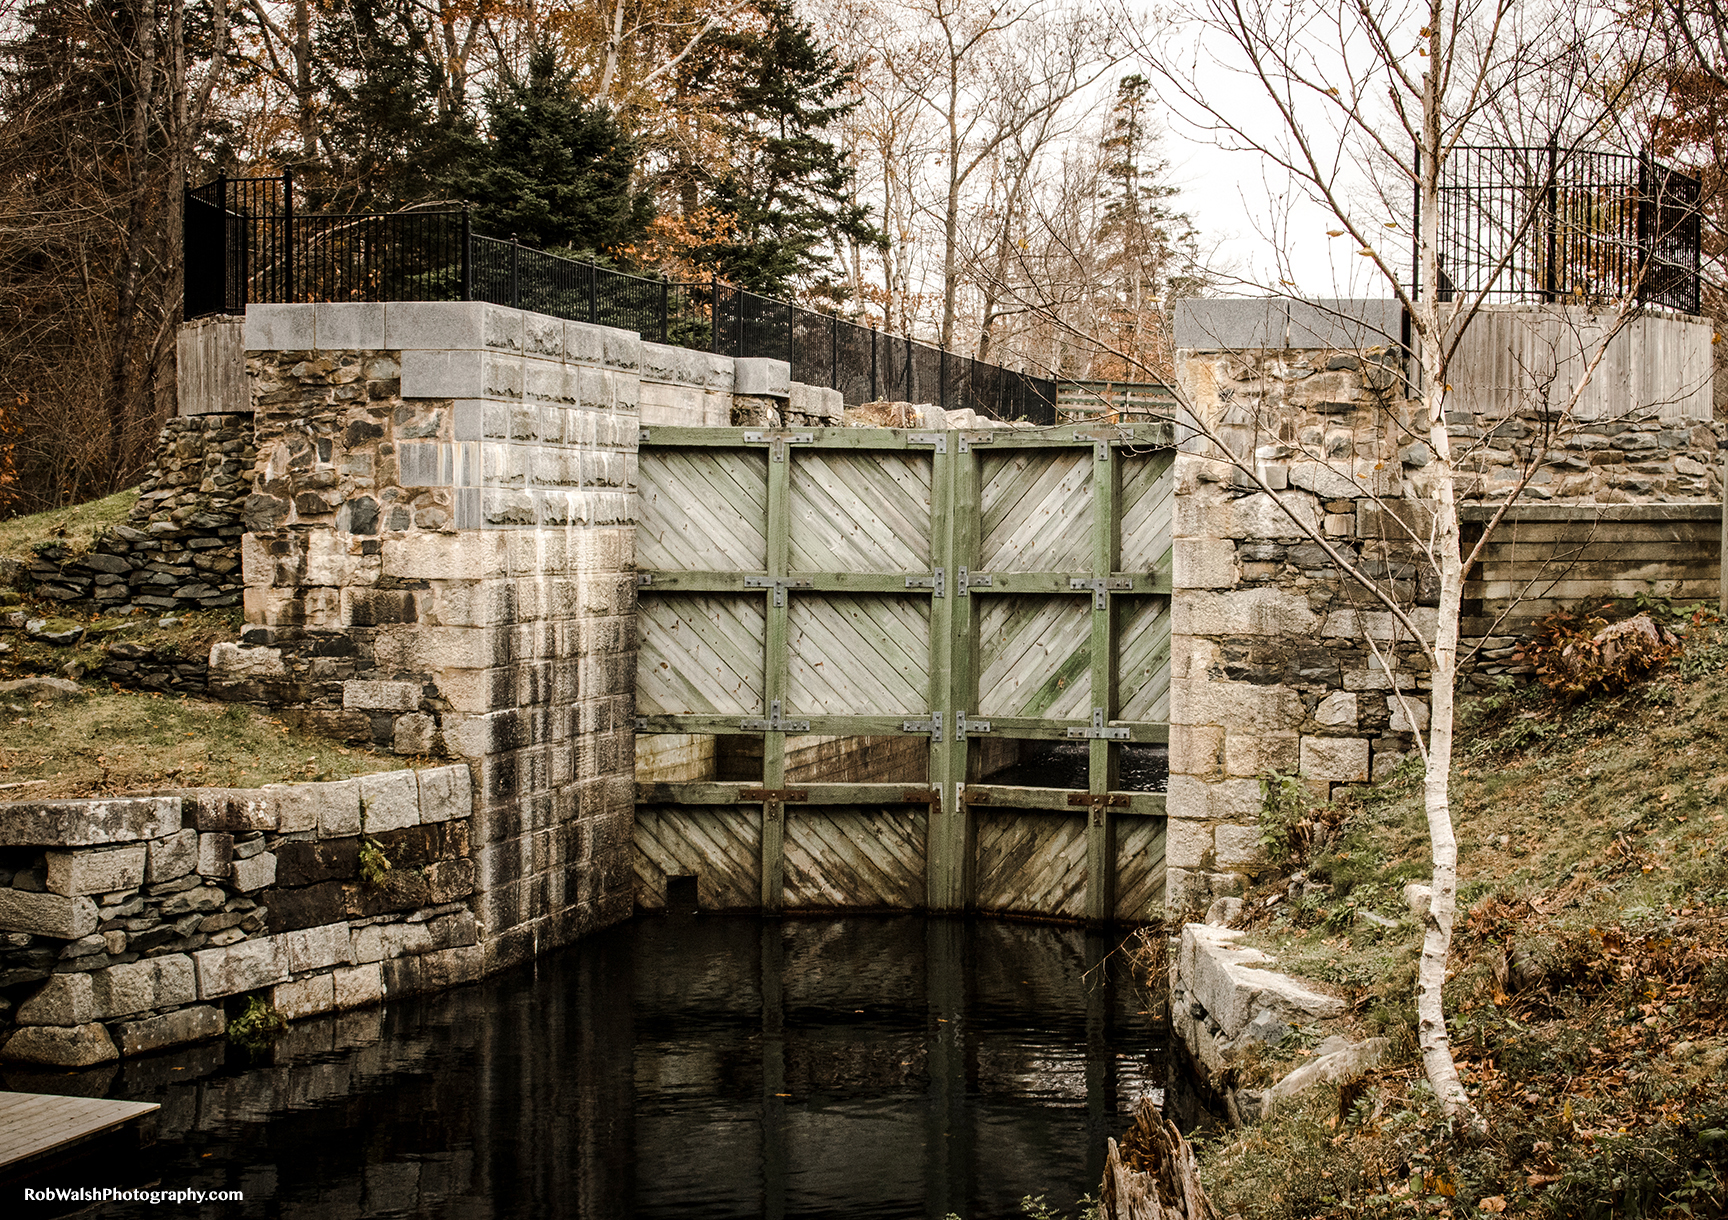 Robert Walsh Photography - Lock 3